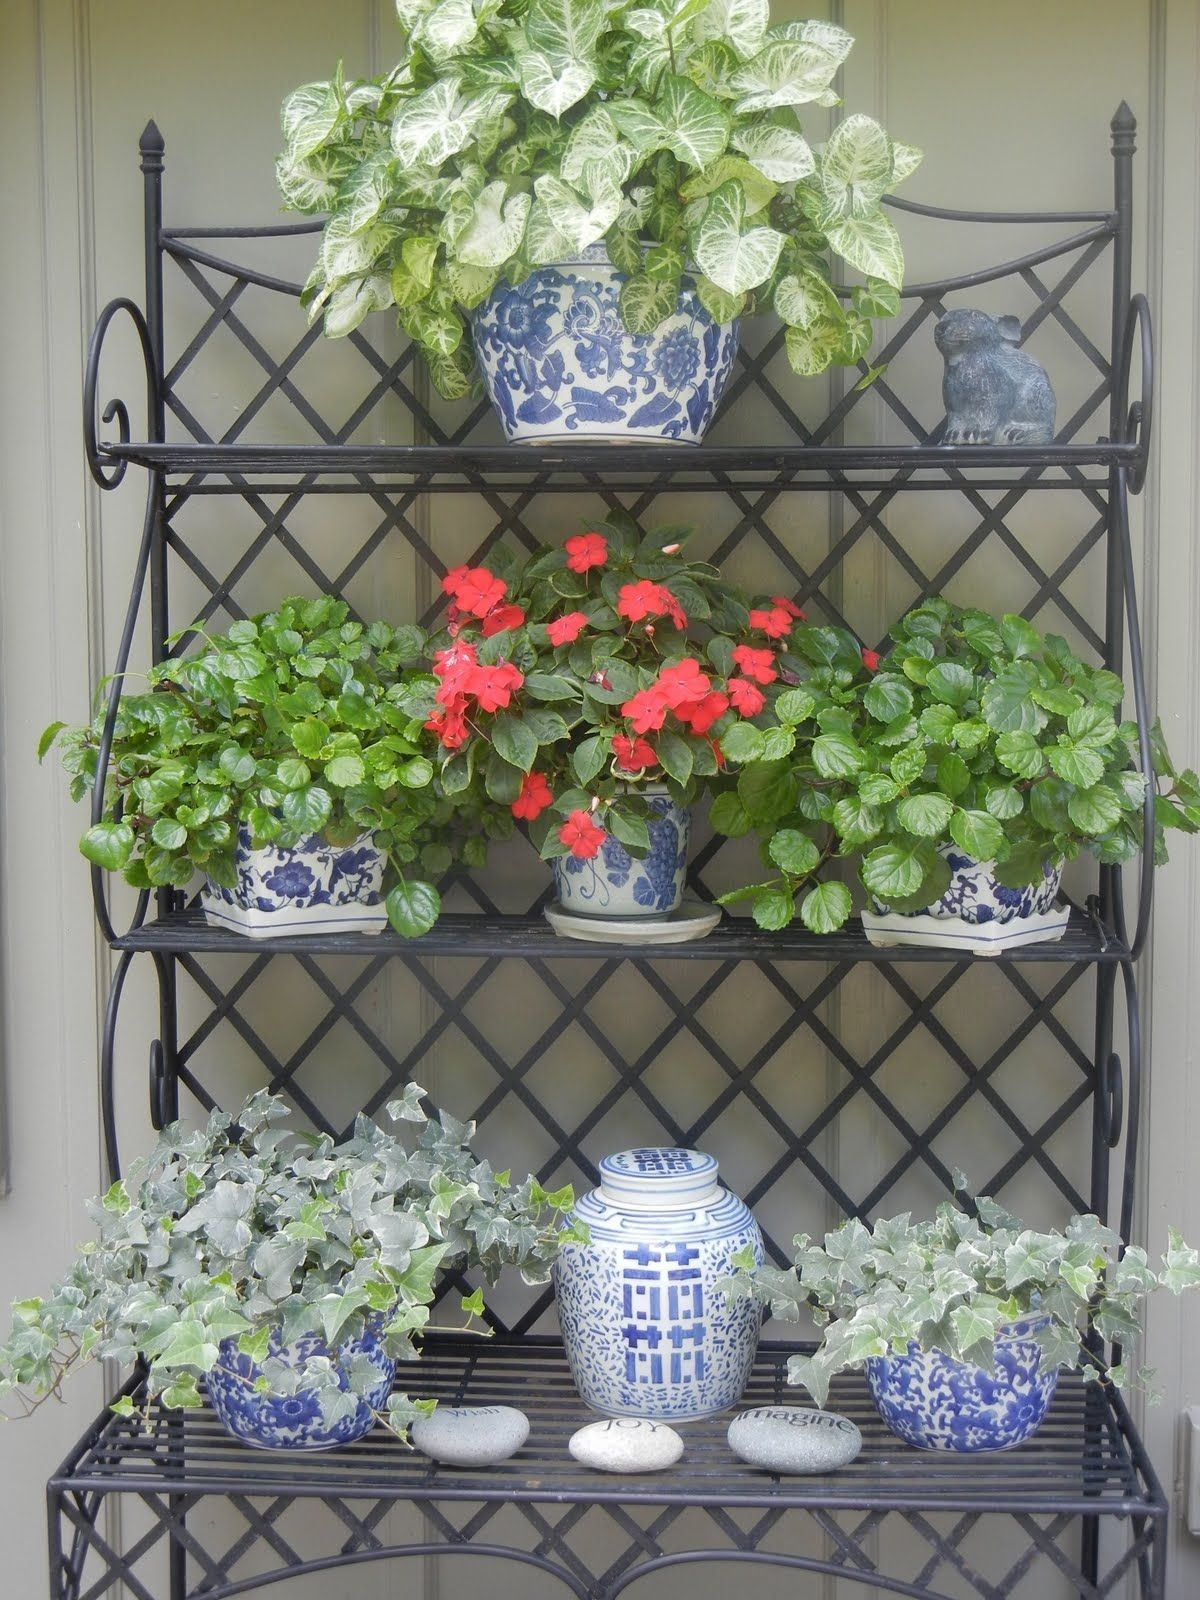 Ordinaire Wrought Iron Bakers Rack Outdoor   Ideas On Foter